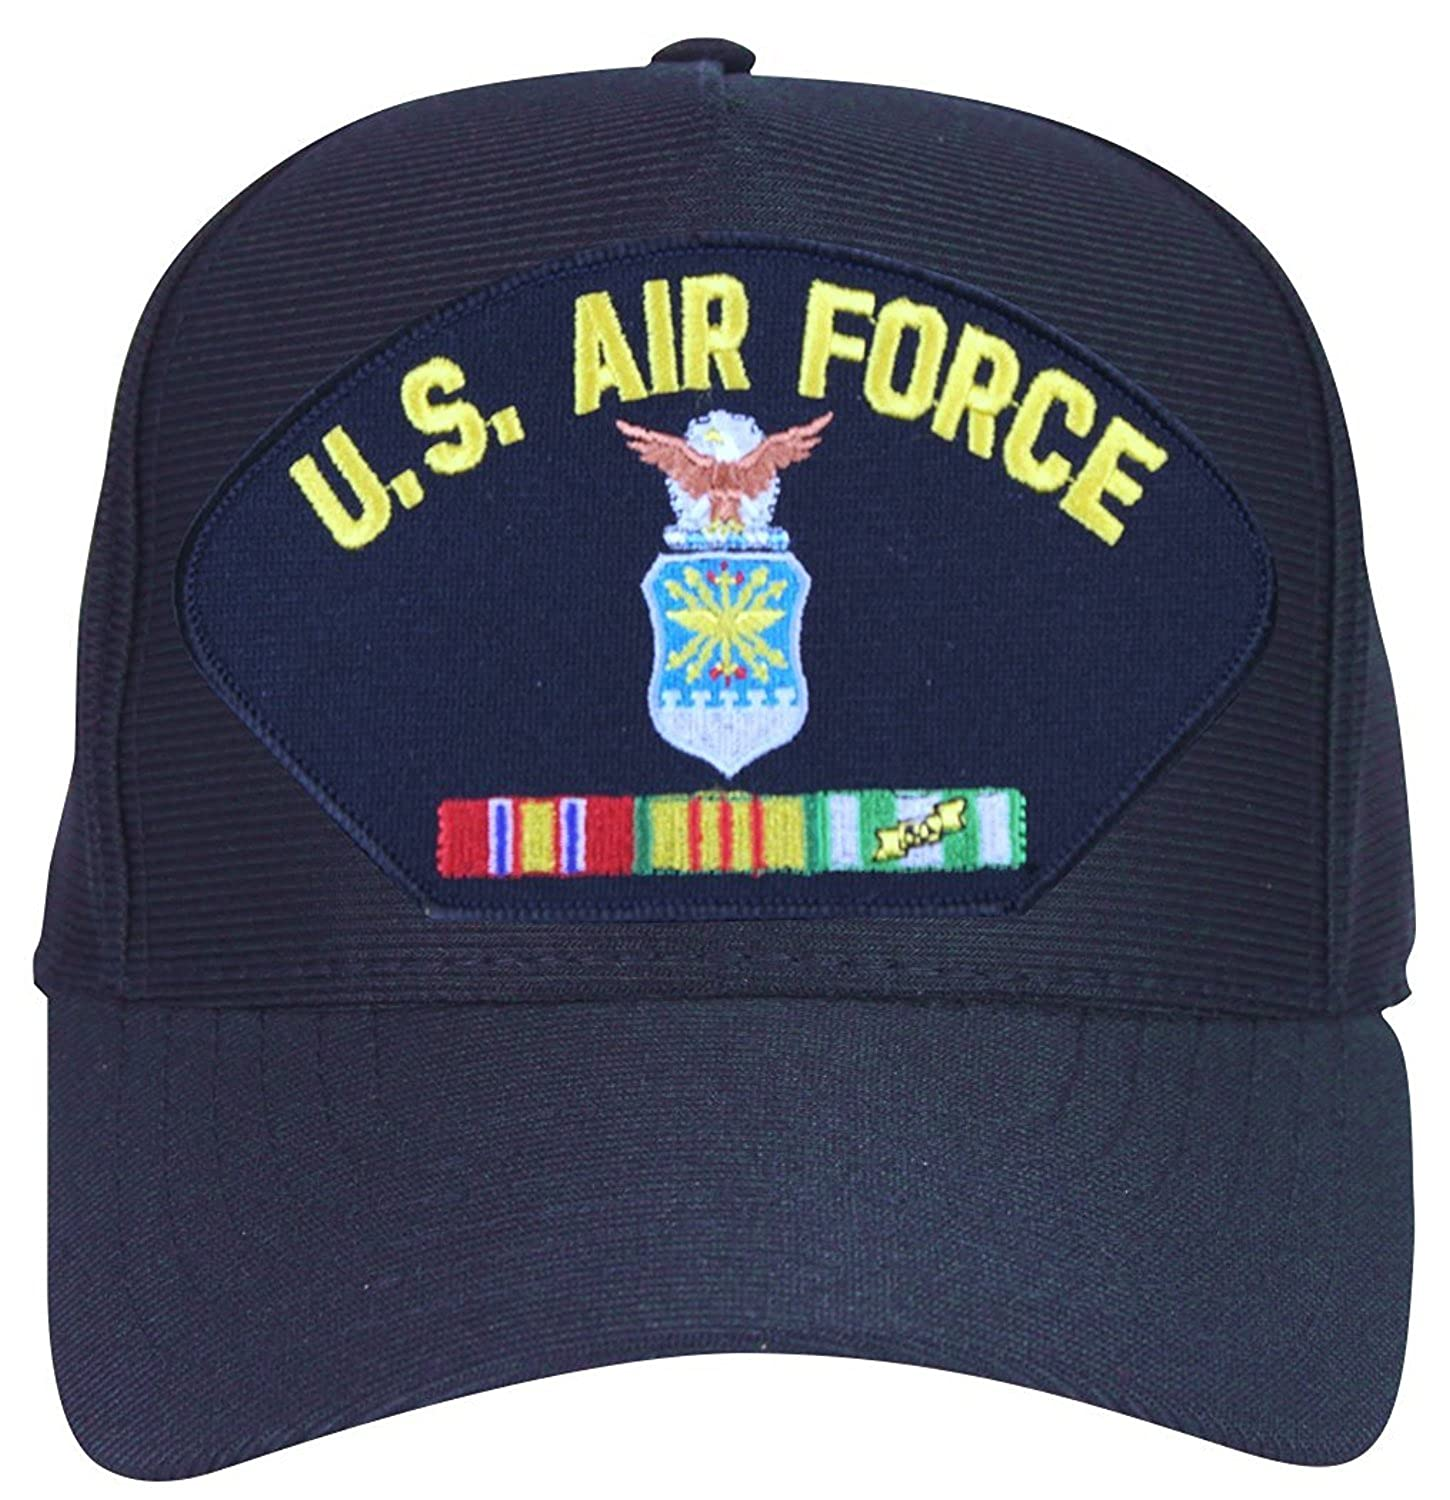 83d93bf1ec763 Armed Forces Depot U.S Air Force With Crest and Vietnam Veteran Ribbons  Baseball Cap. Navy Blue. mase In USA